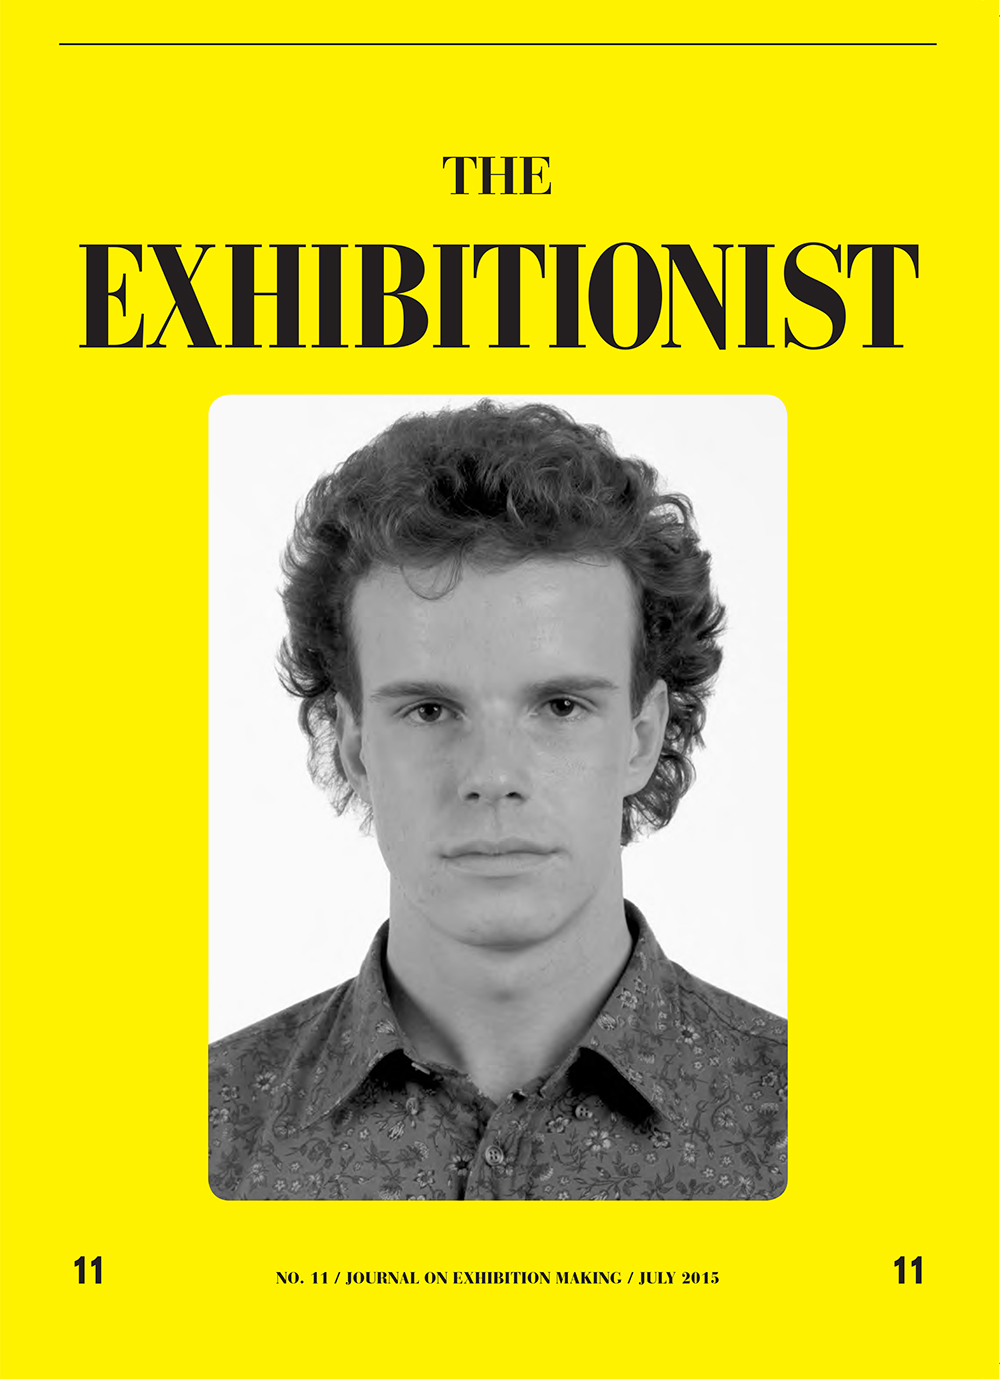 The Exhibitionist  11, July 2015